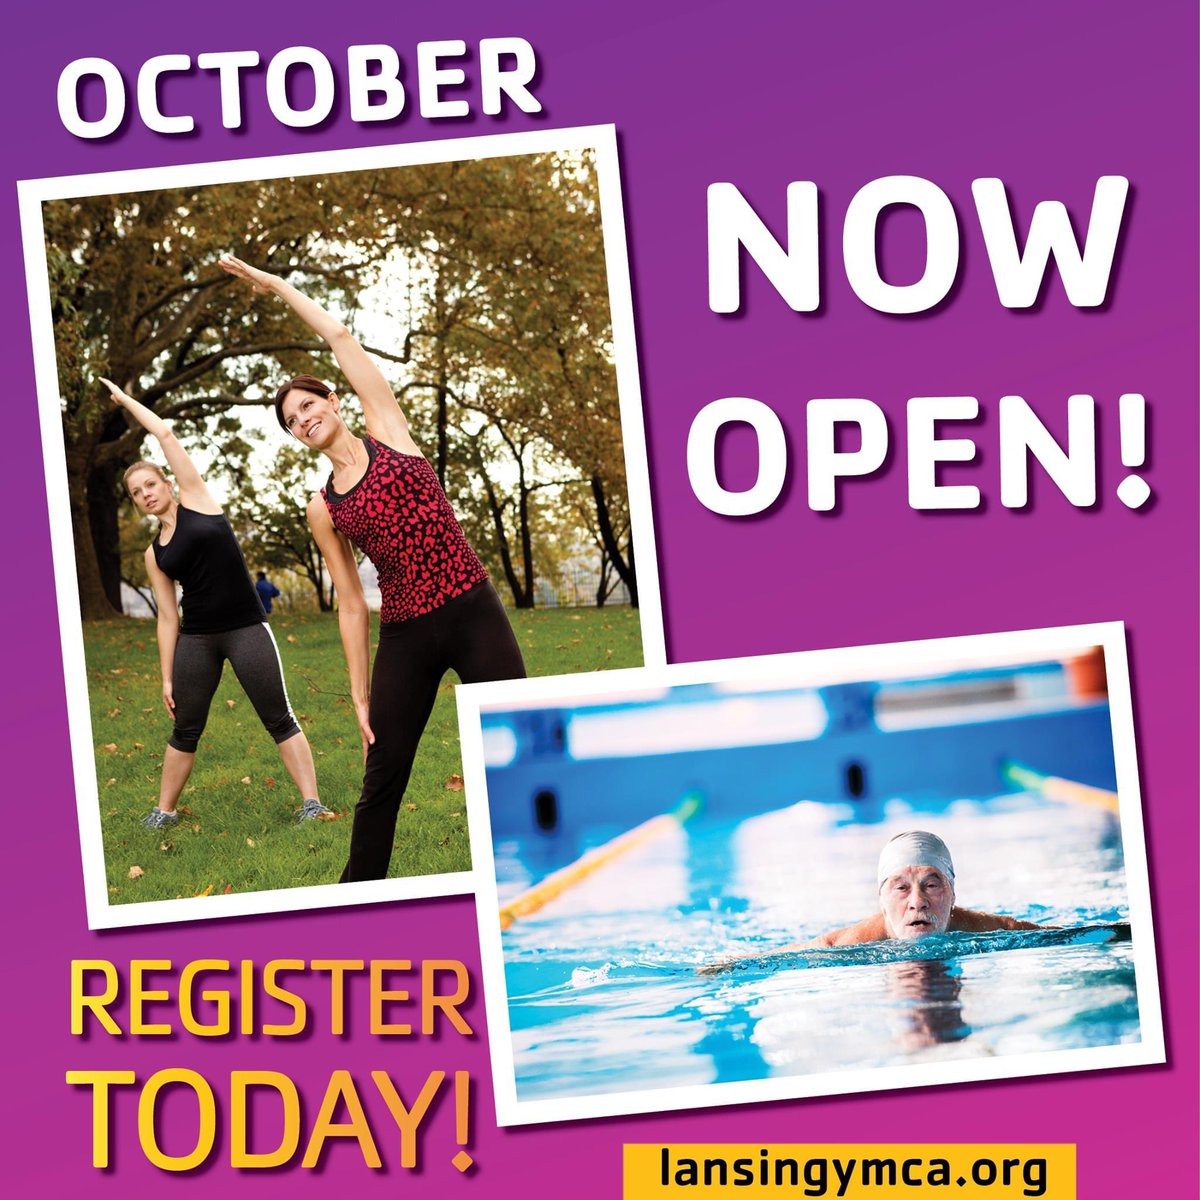 October Registration is now open for Outdoor Group Fitness Classes and Lap Swim Reservations with the @YMCALansing! Secure your spot today! For more info. visit: